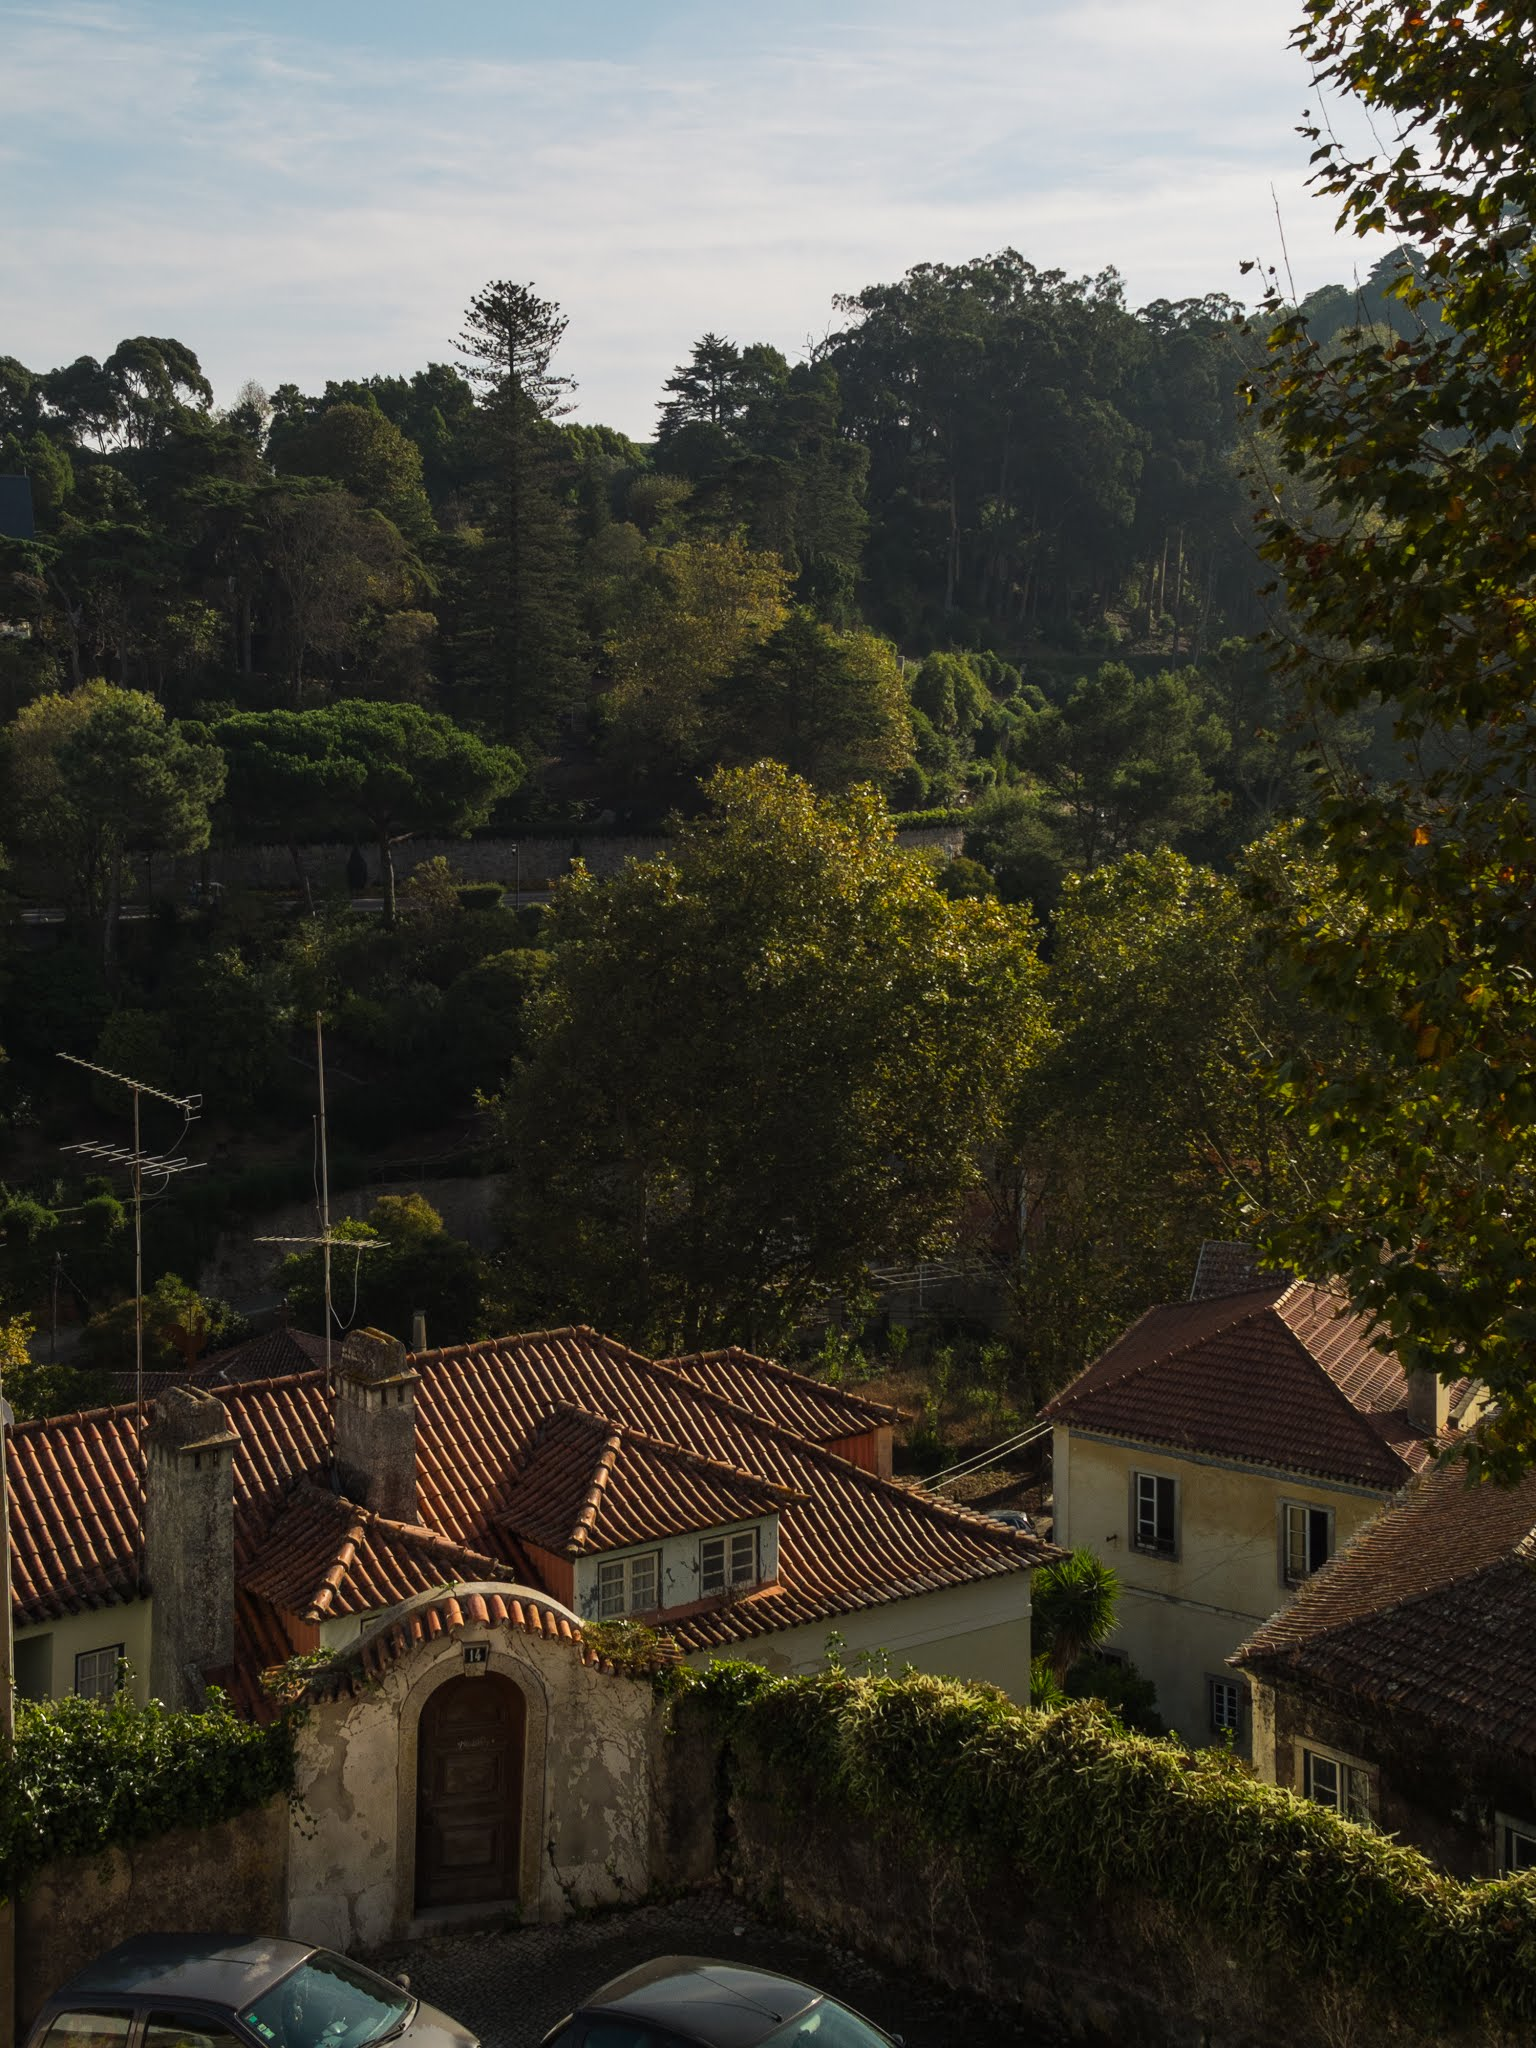 View of terracotta roofs and trees from a hillside in Sintra.